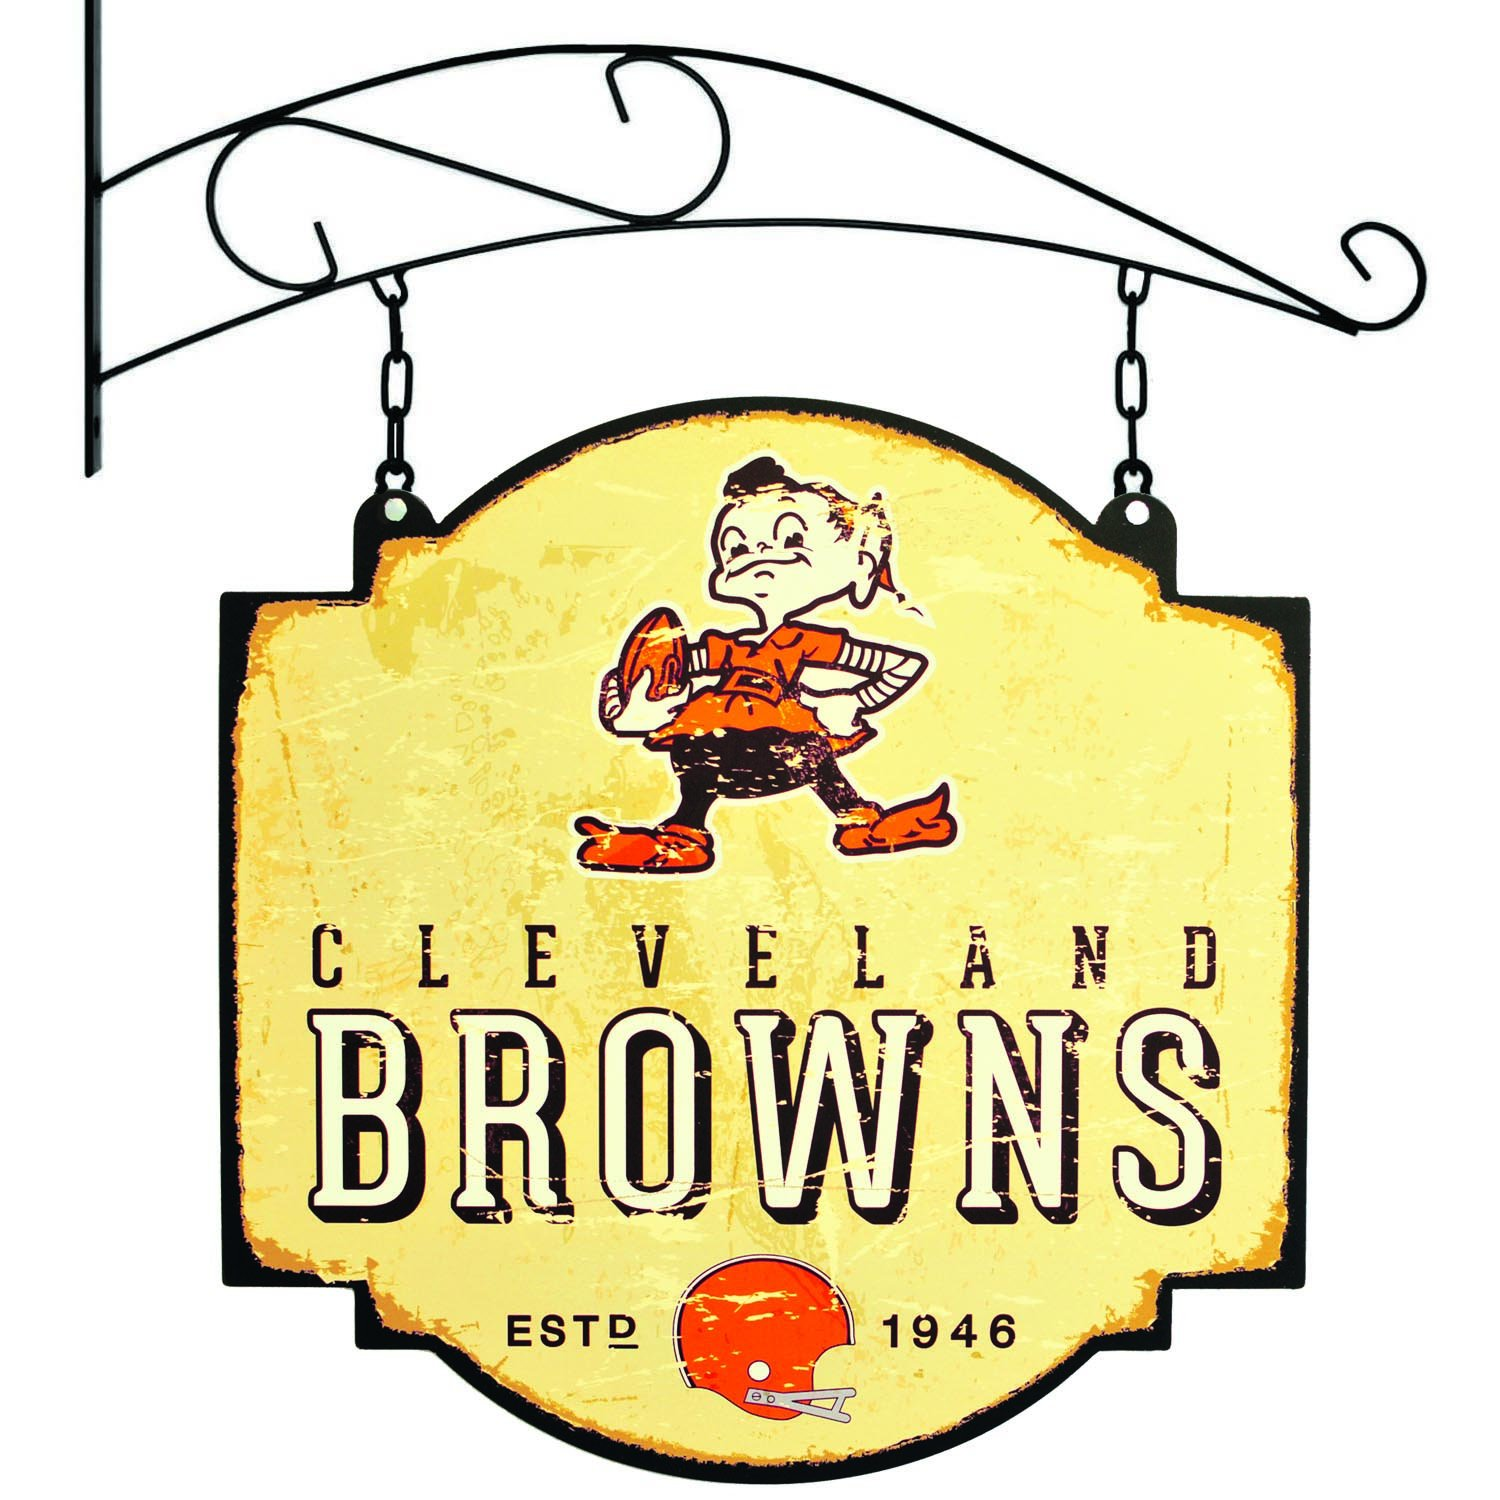 Amazon.com : NFL Cleveland Browns Tavern Sign : Sports & Outdoors